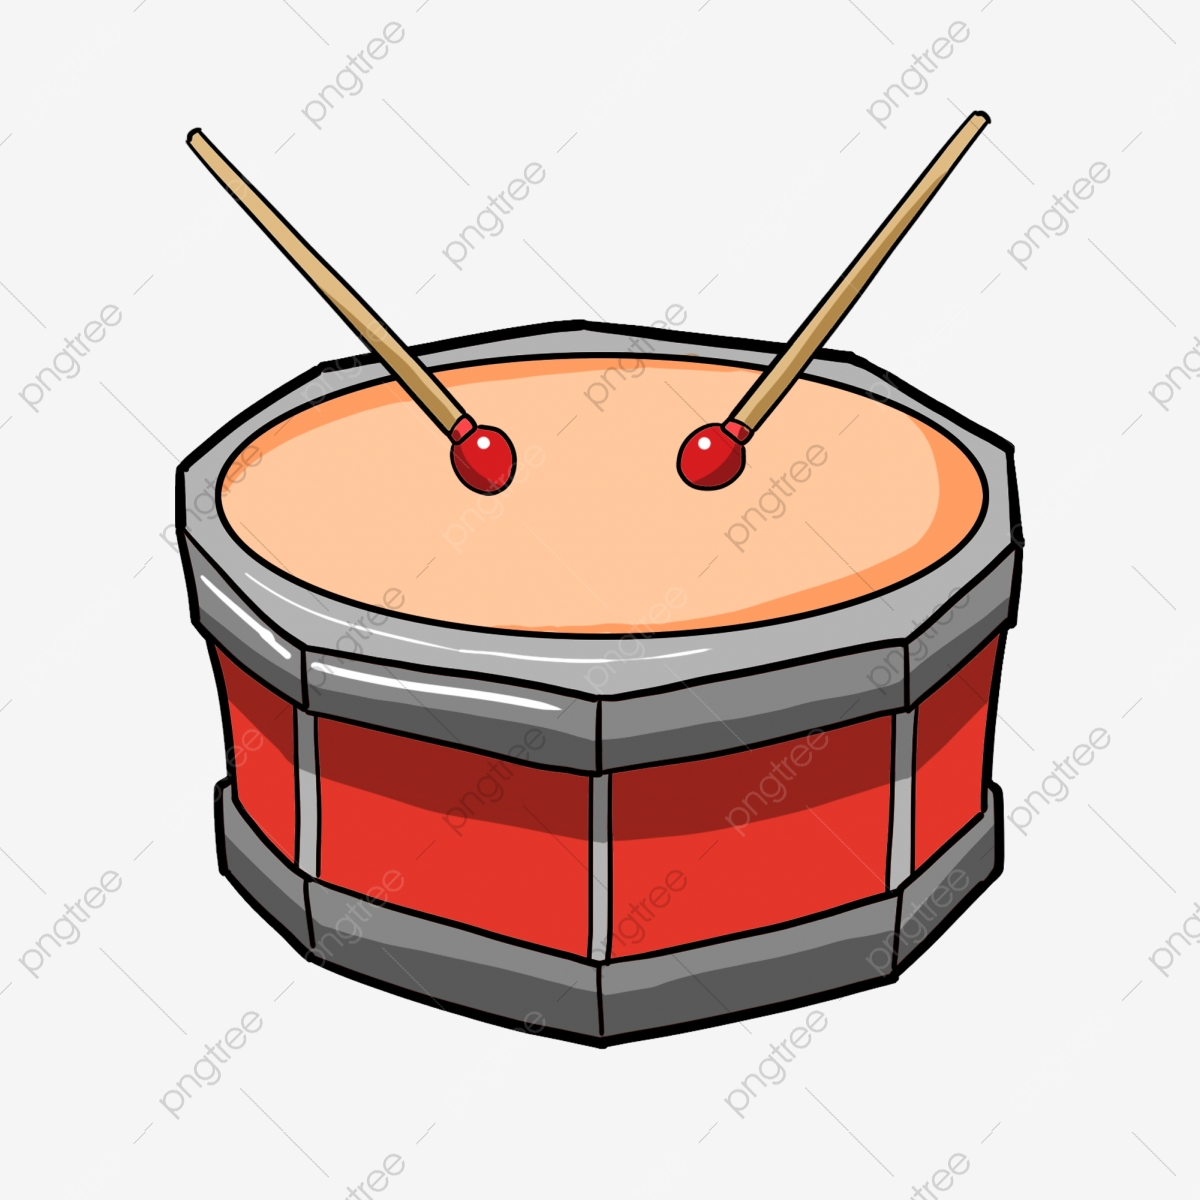 A Snare Drum Etiquette, Musical Instruments, Drums, Drumming PNG.